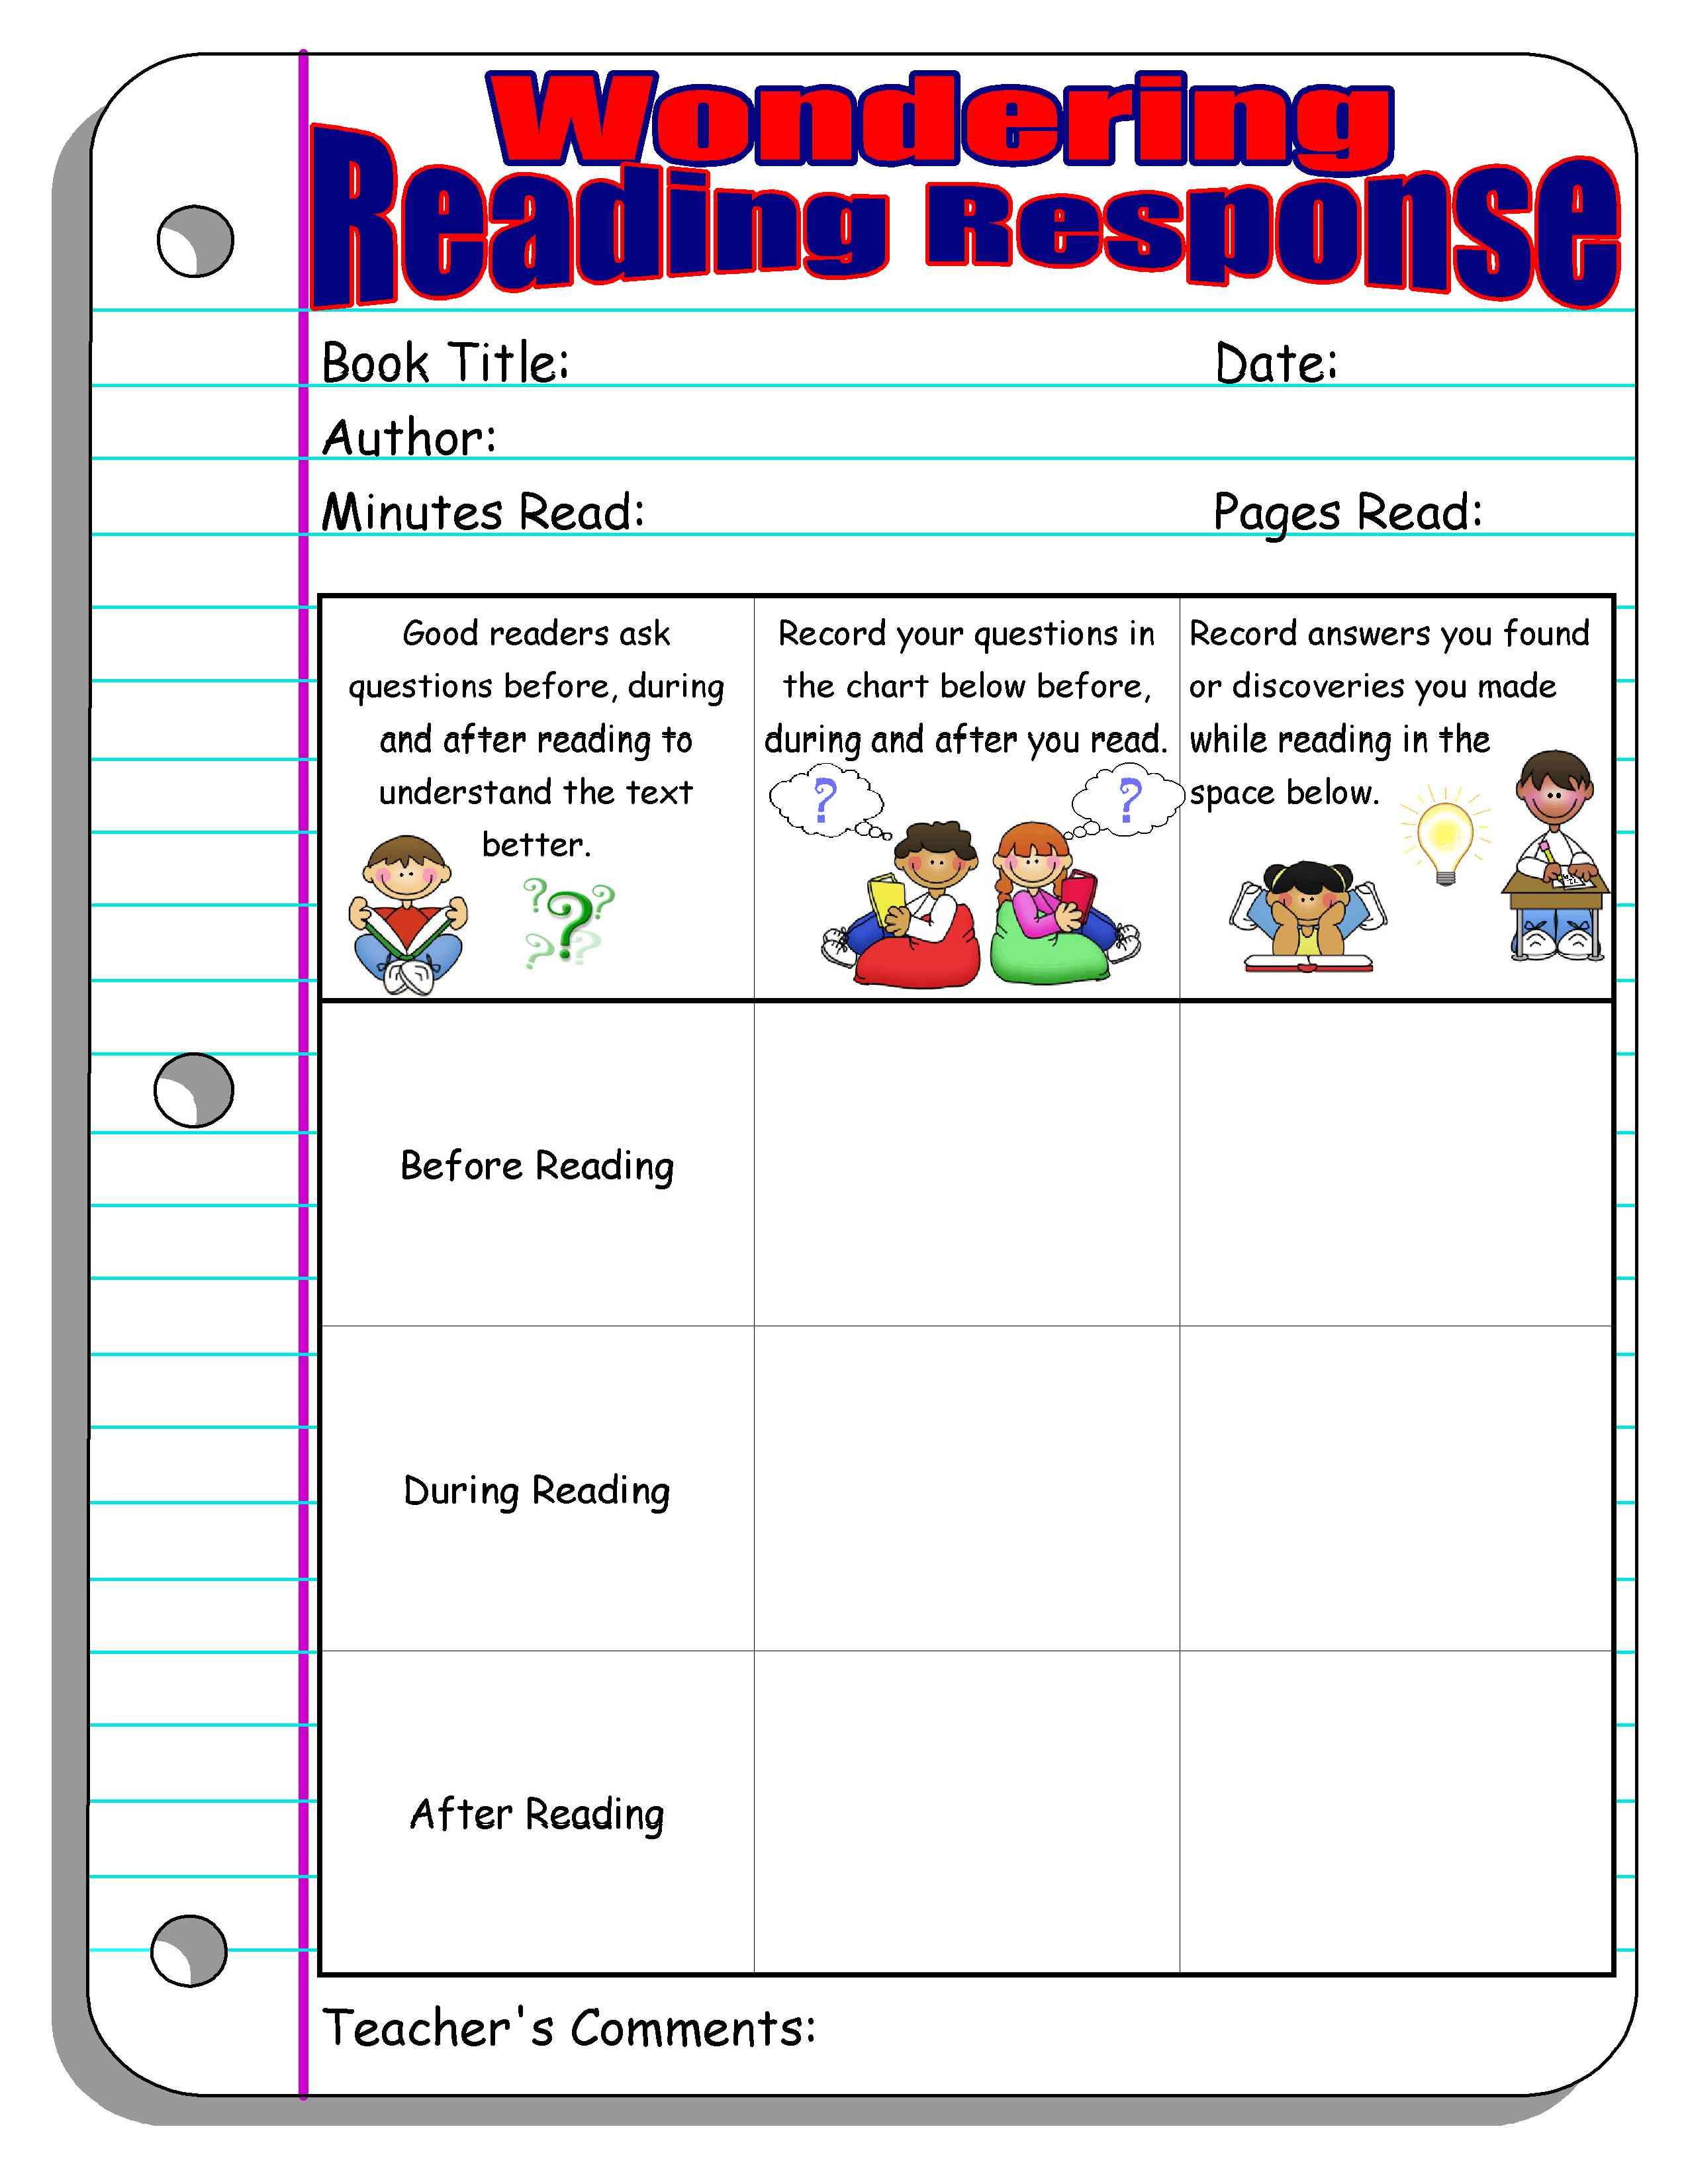 Reading Response Forms and Graphic Organizers   Scholastic.com   Reading  response worksheets [ 3300 x 2550 Pixel ]